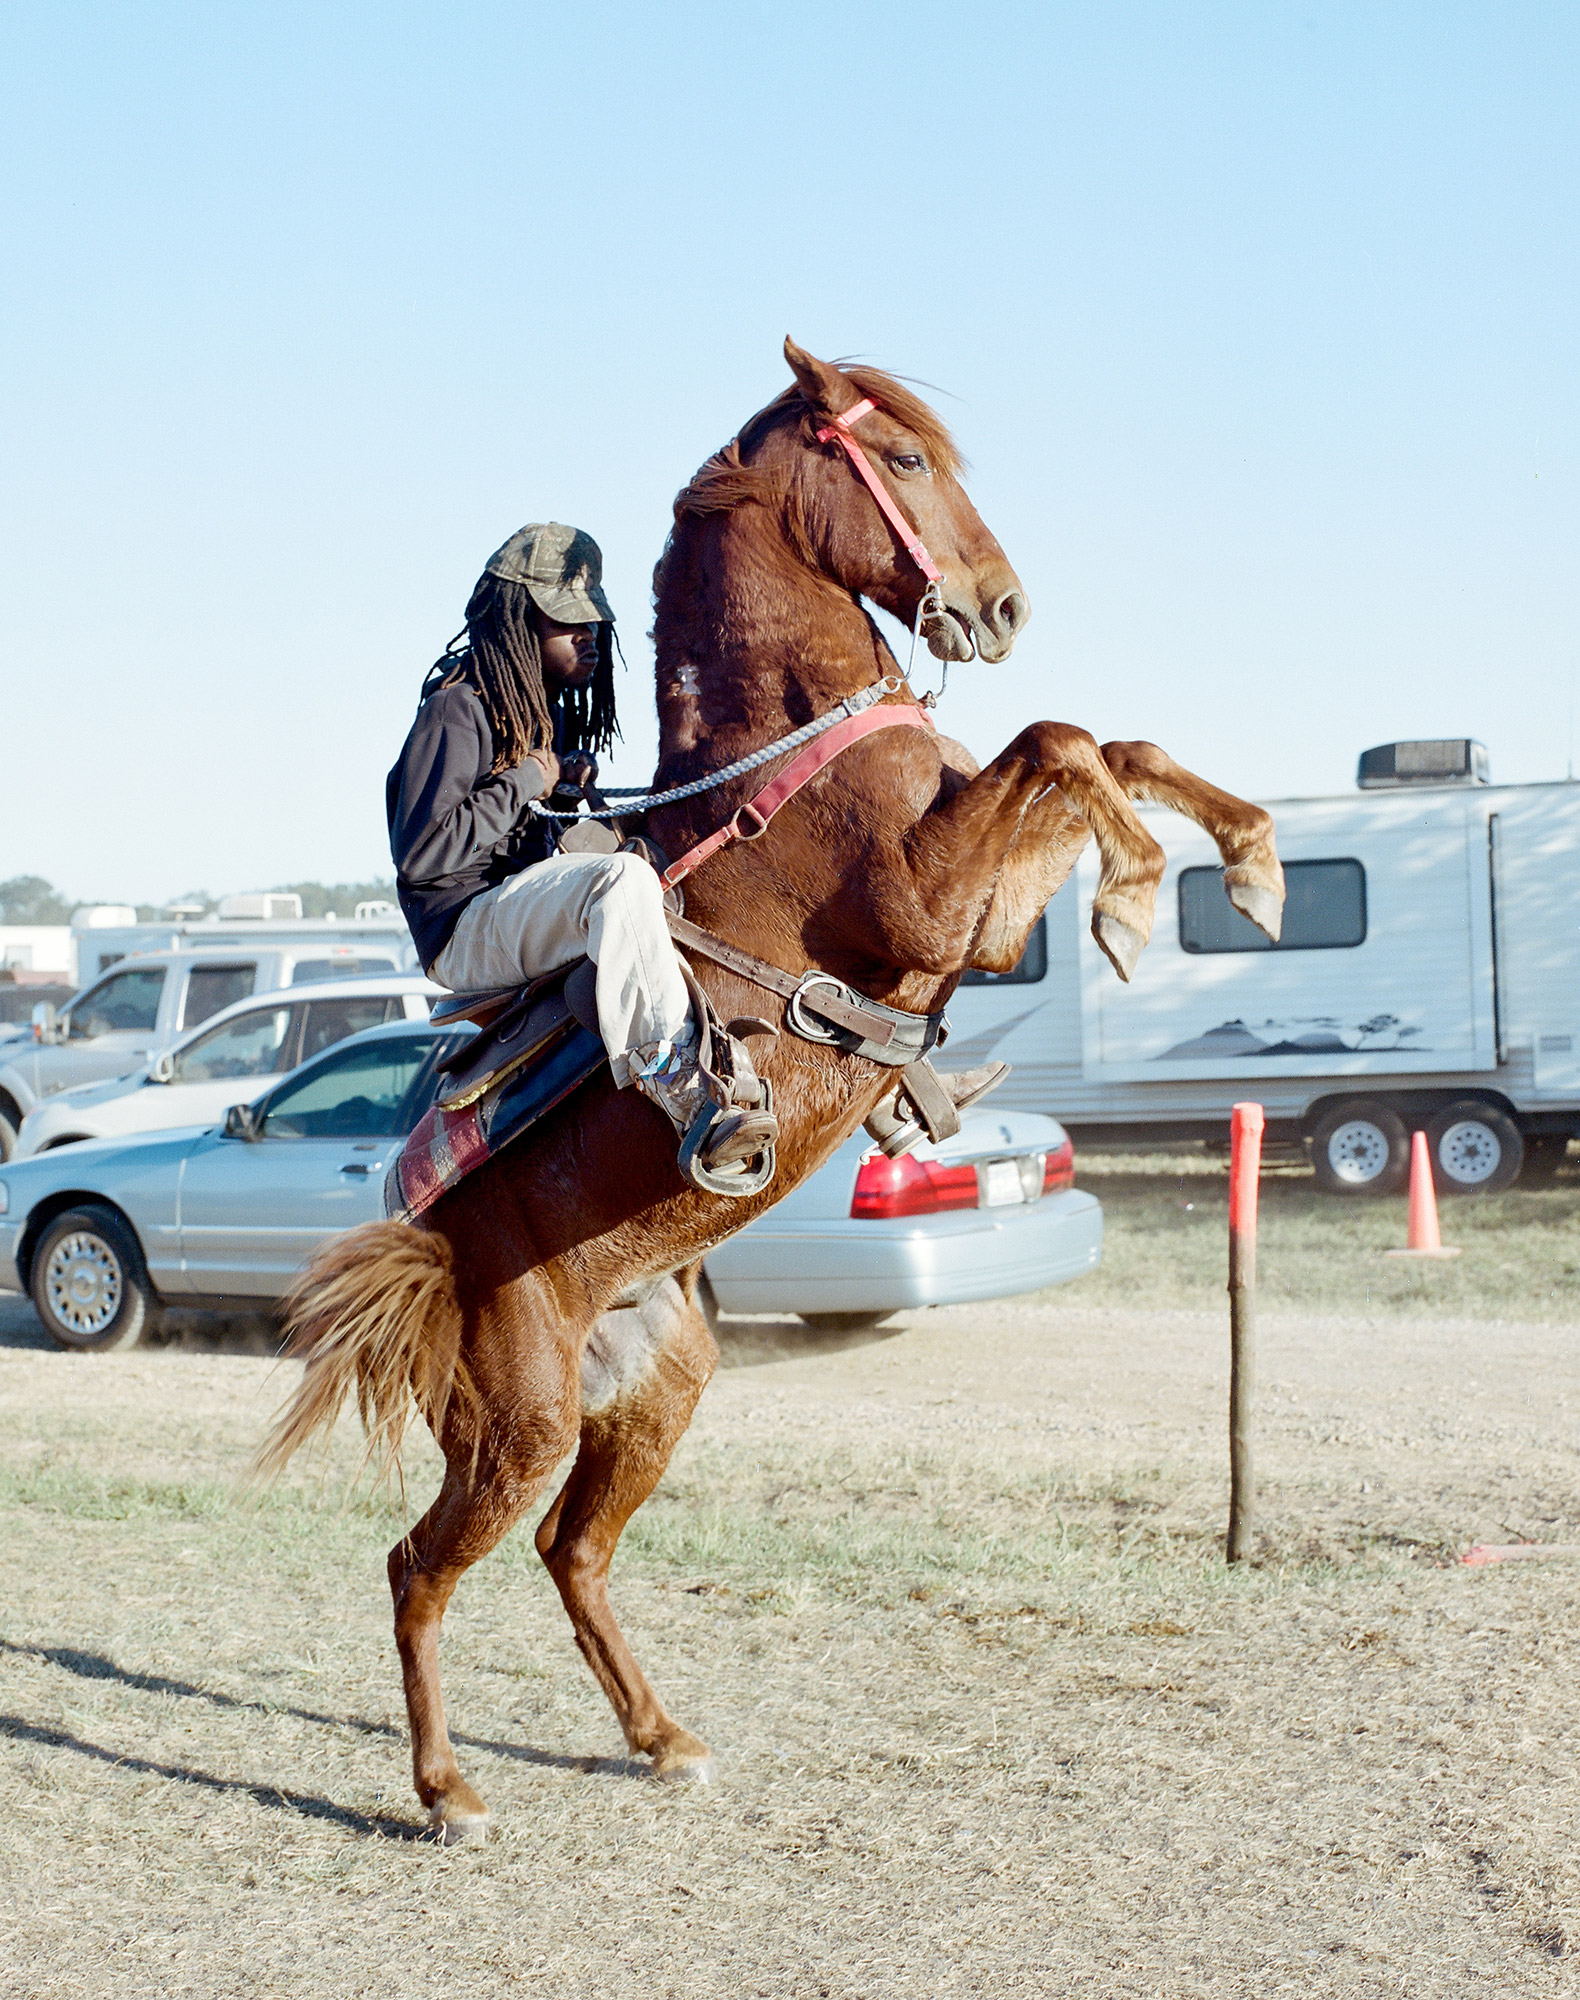 A man doing a trick at a trail ride in Southern Louisiana. 2014